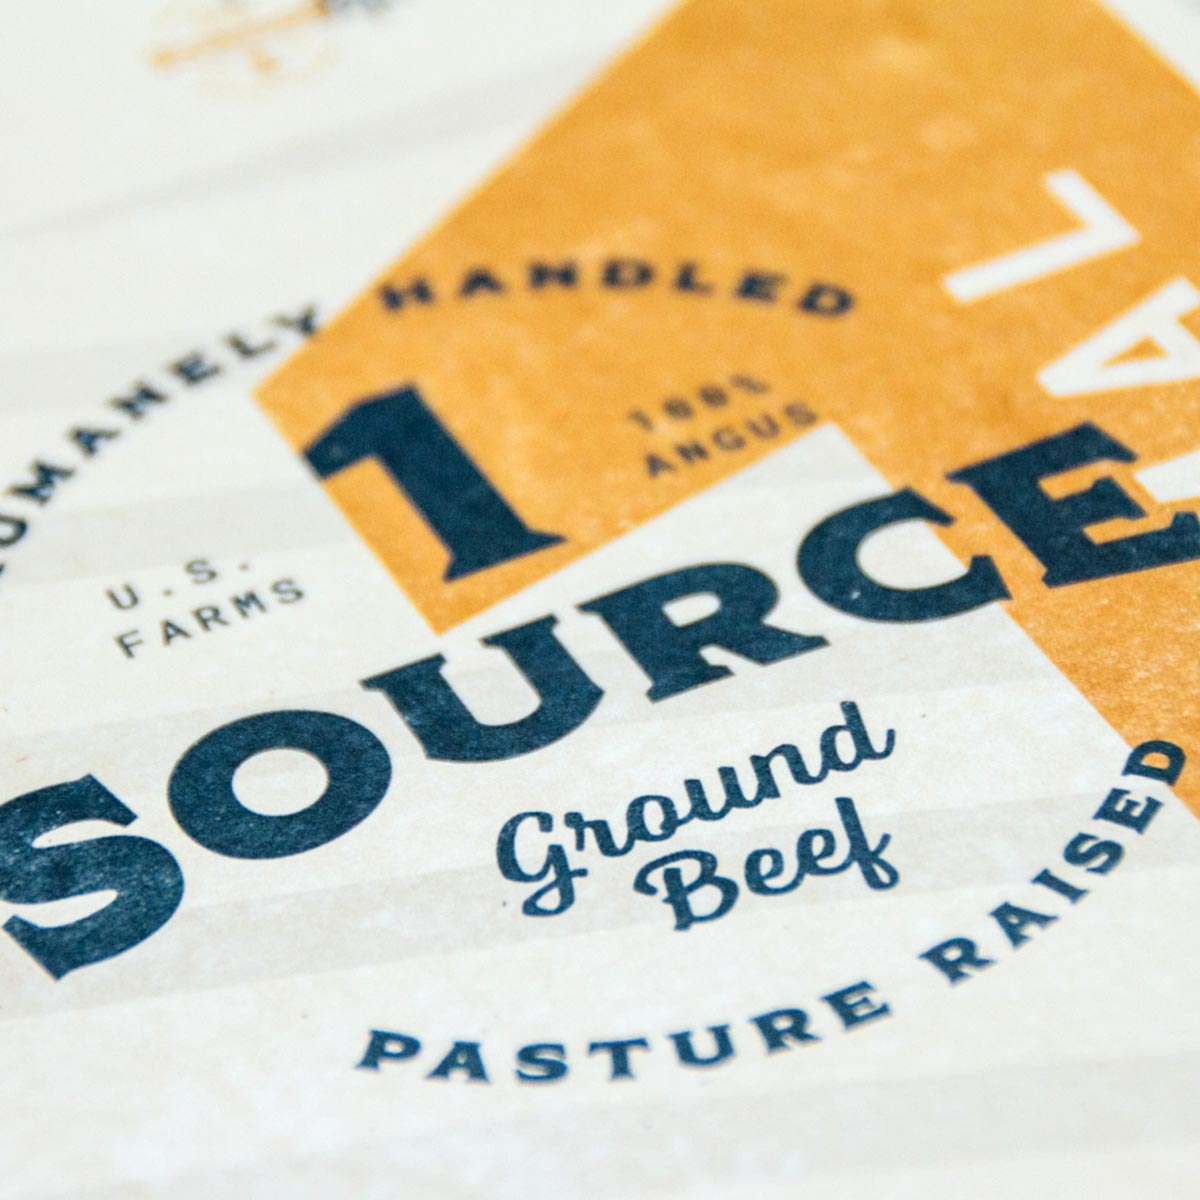 photo of 1 source ground beef packaging